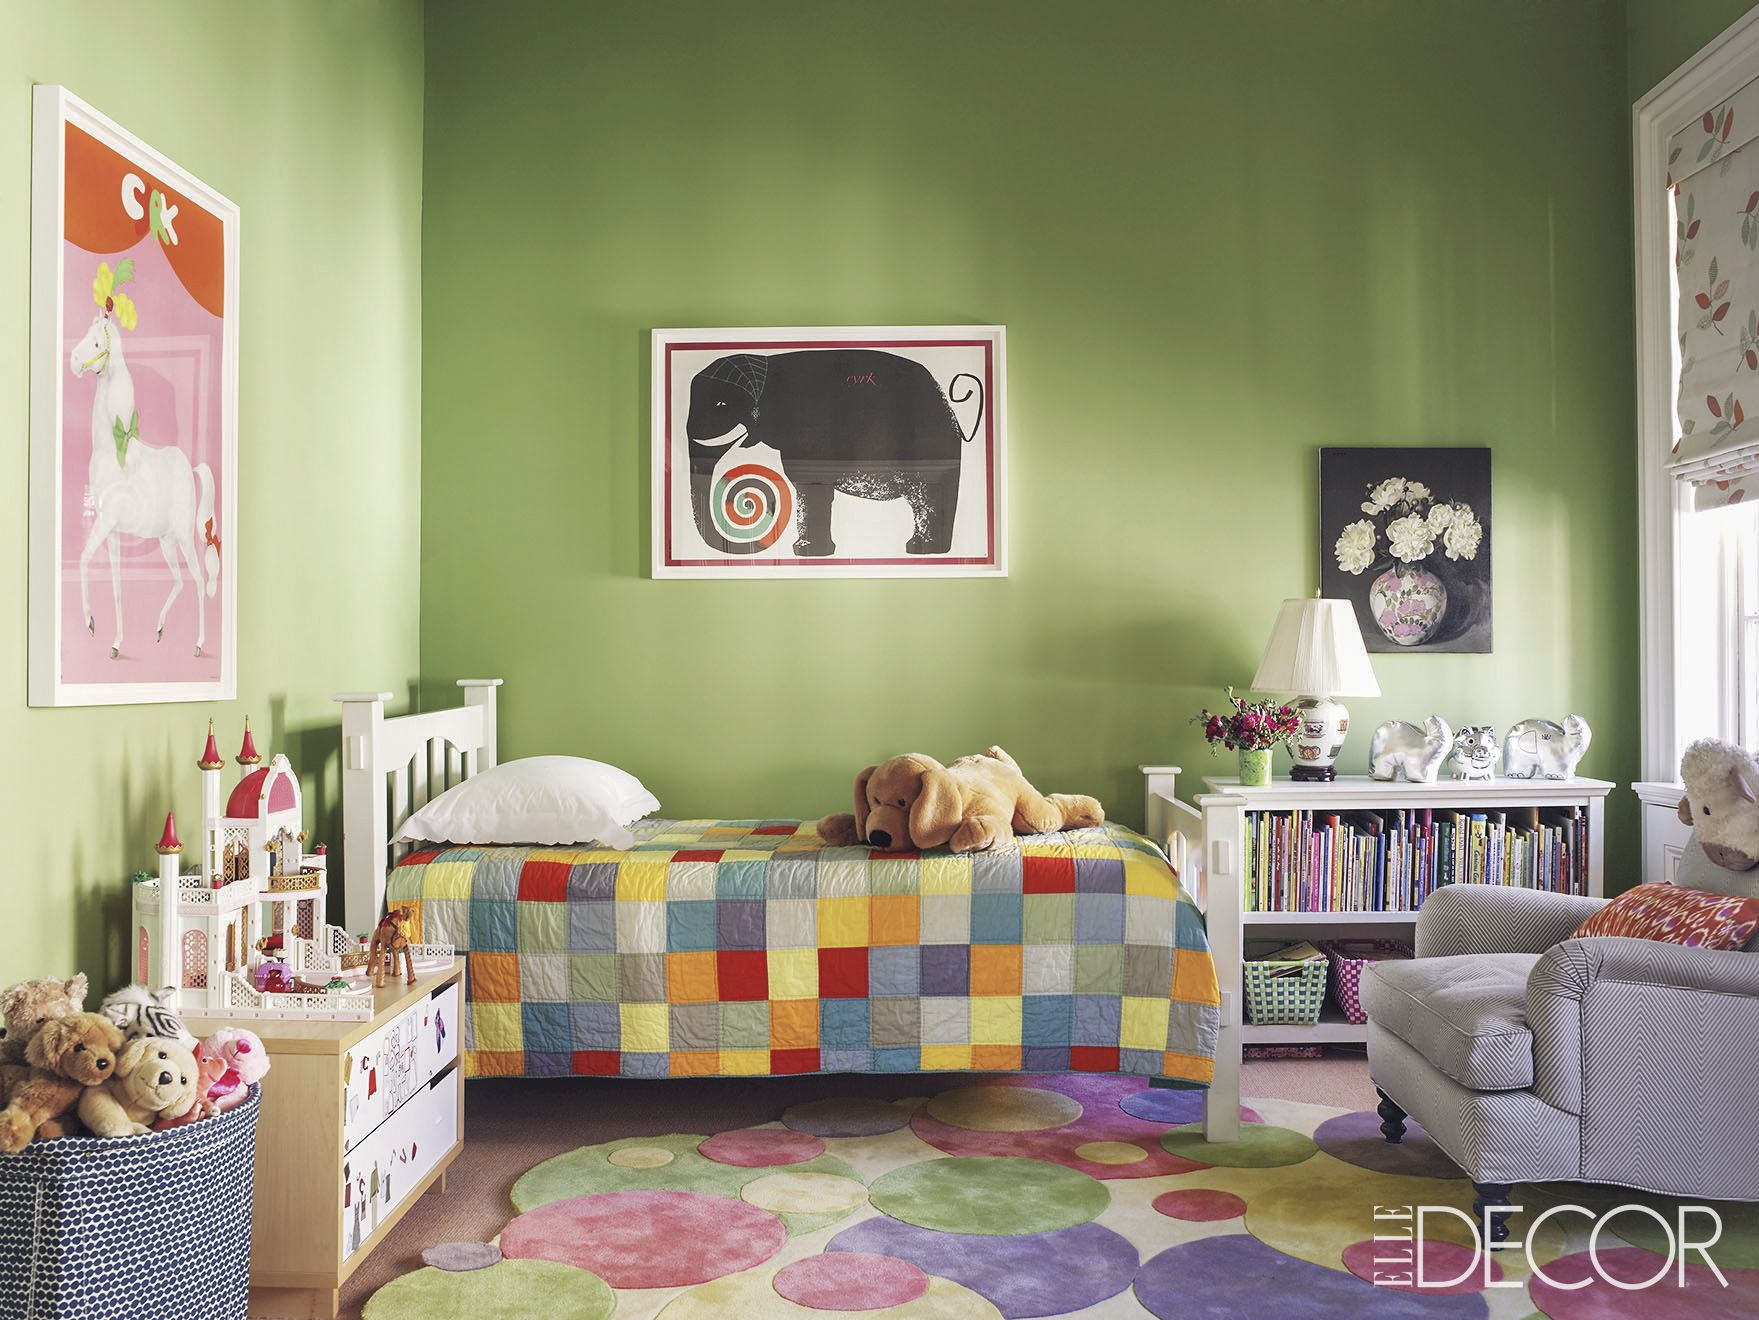 18 cool kids room decorating ideas kids room decor rh elledecor com kids room decorating ideas for girls kids room decorations free cheap nature theme